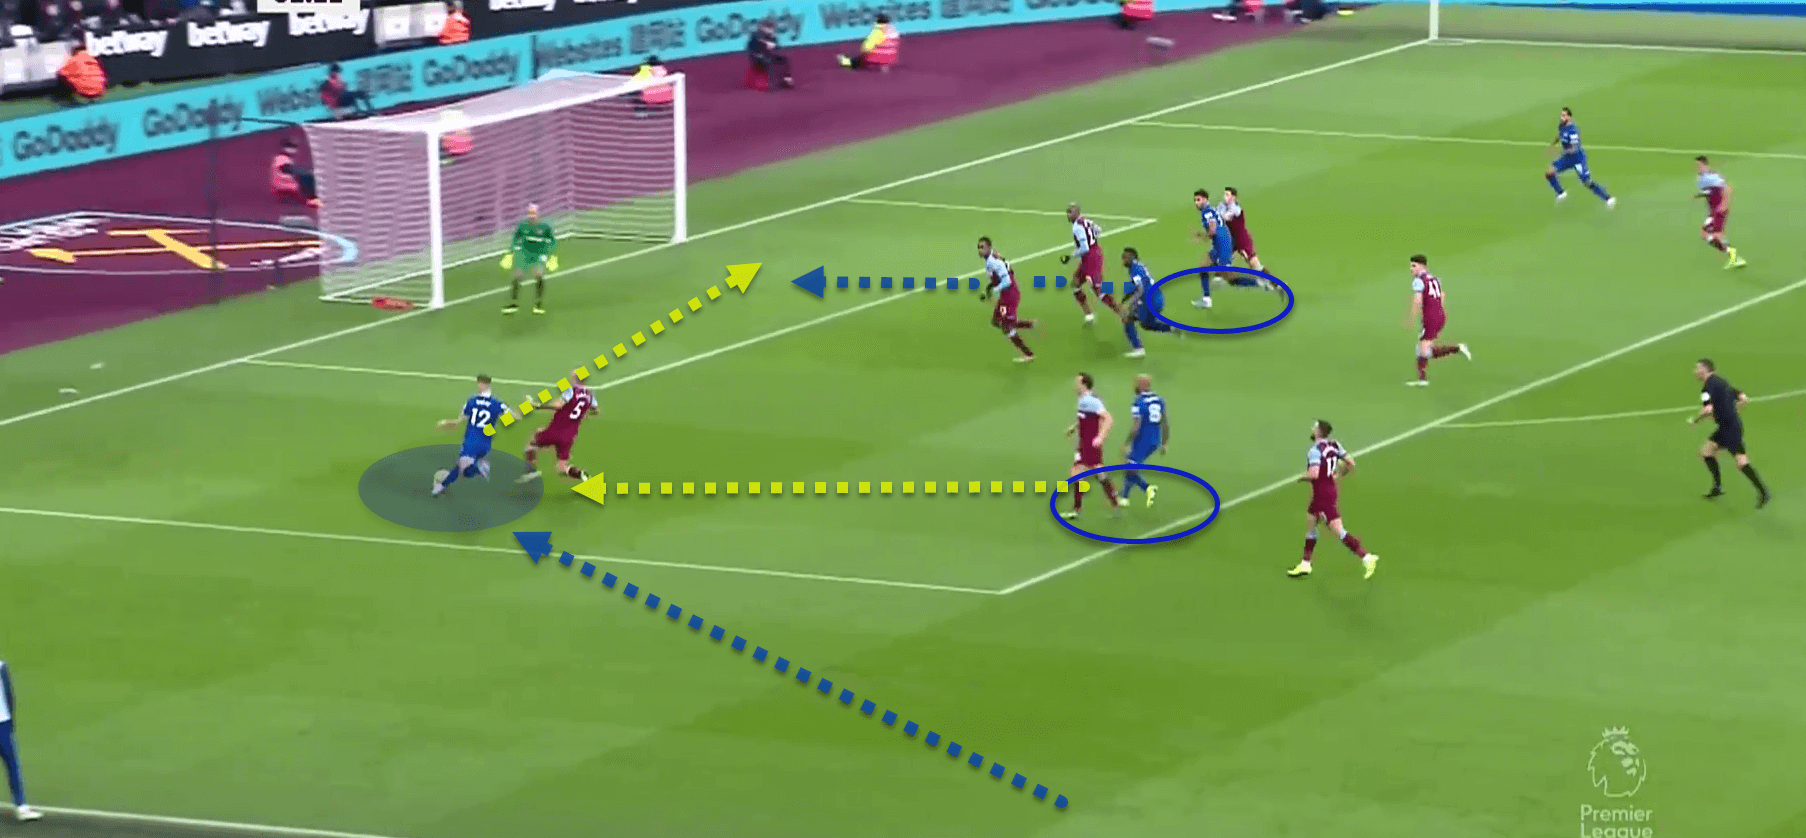 Premier League 2019/20: West Ham Utd v Everton - Tactical Analysis tactics